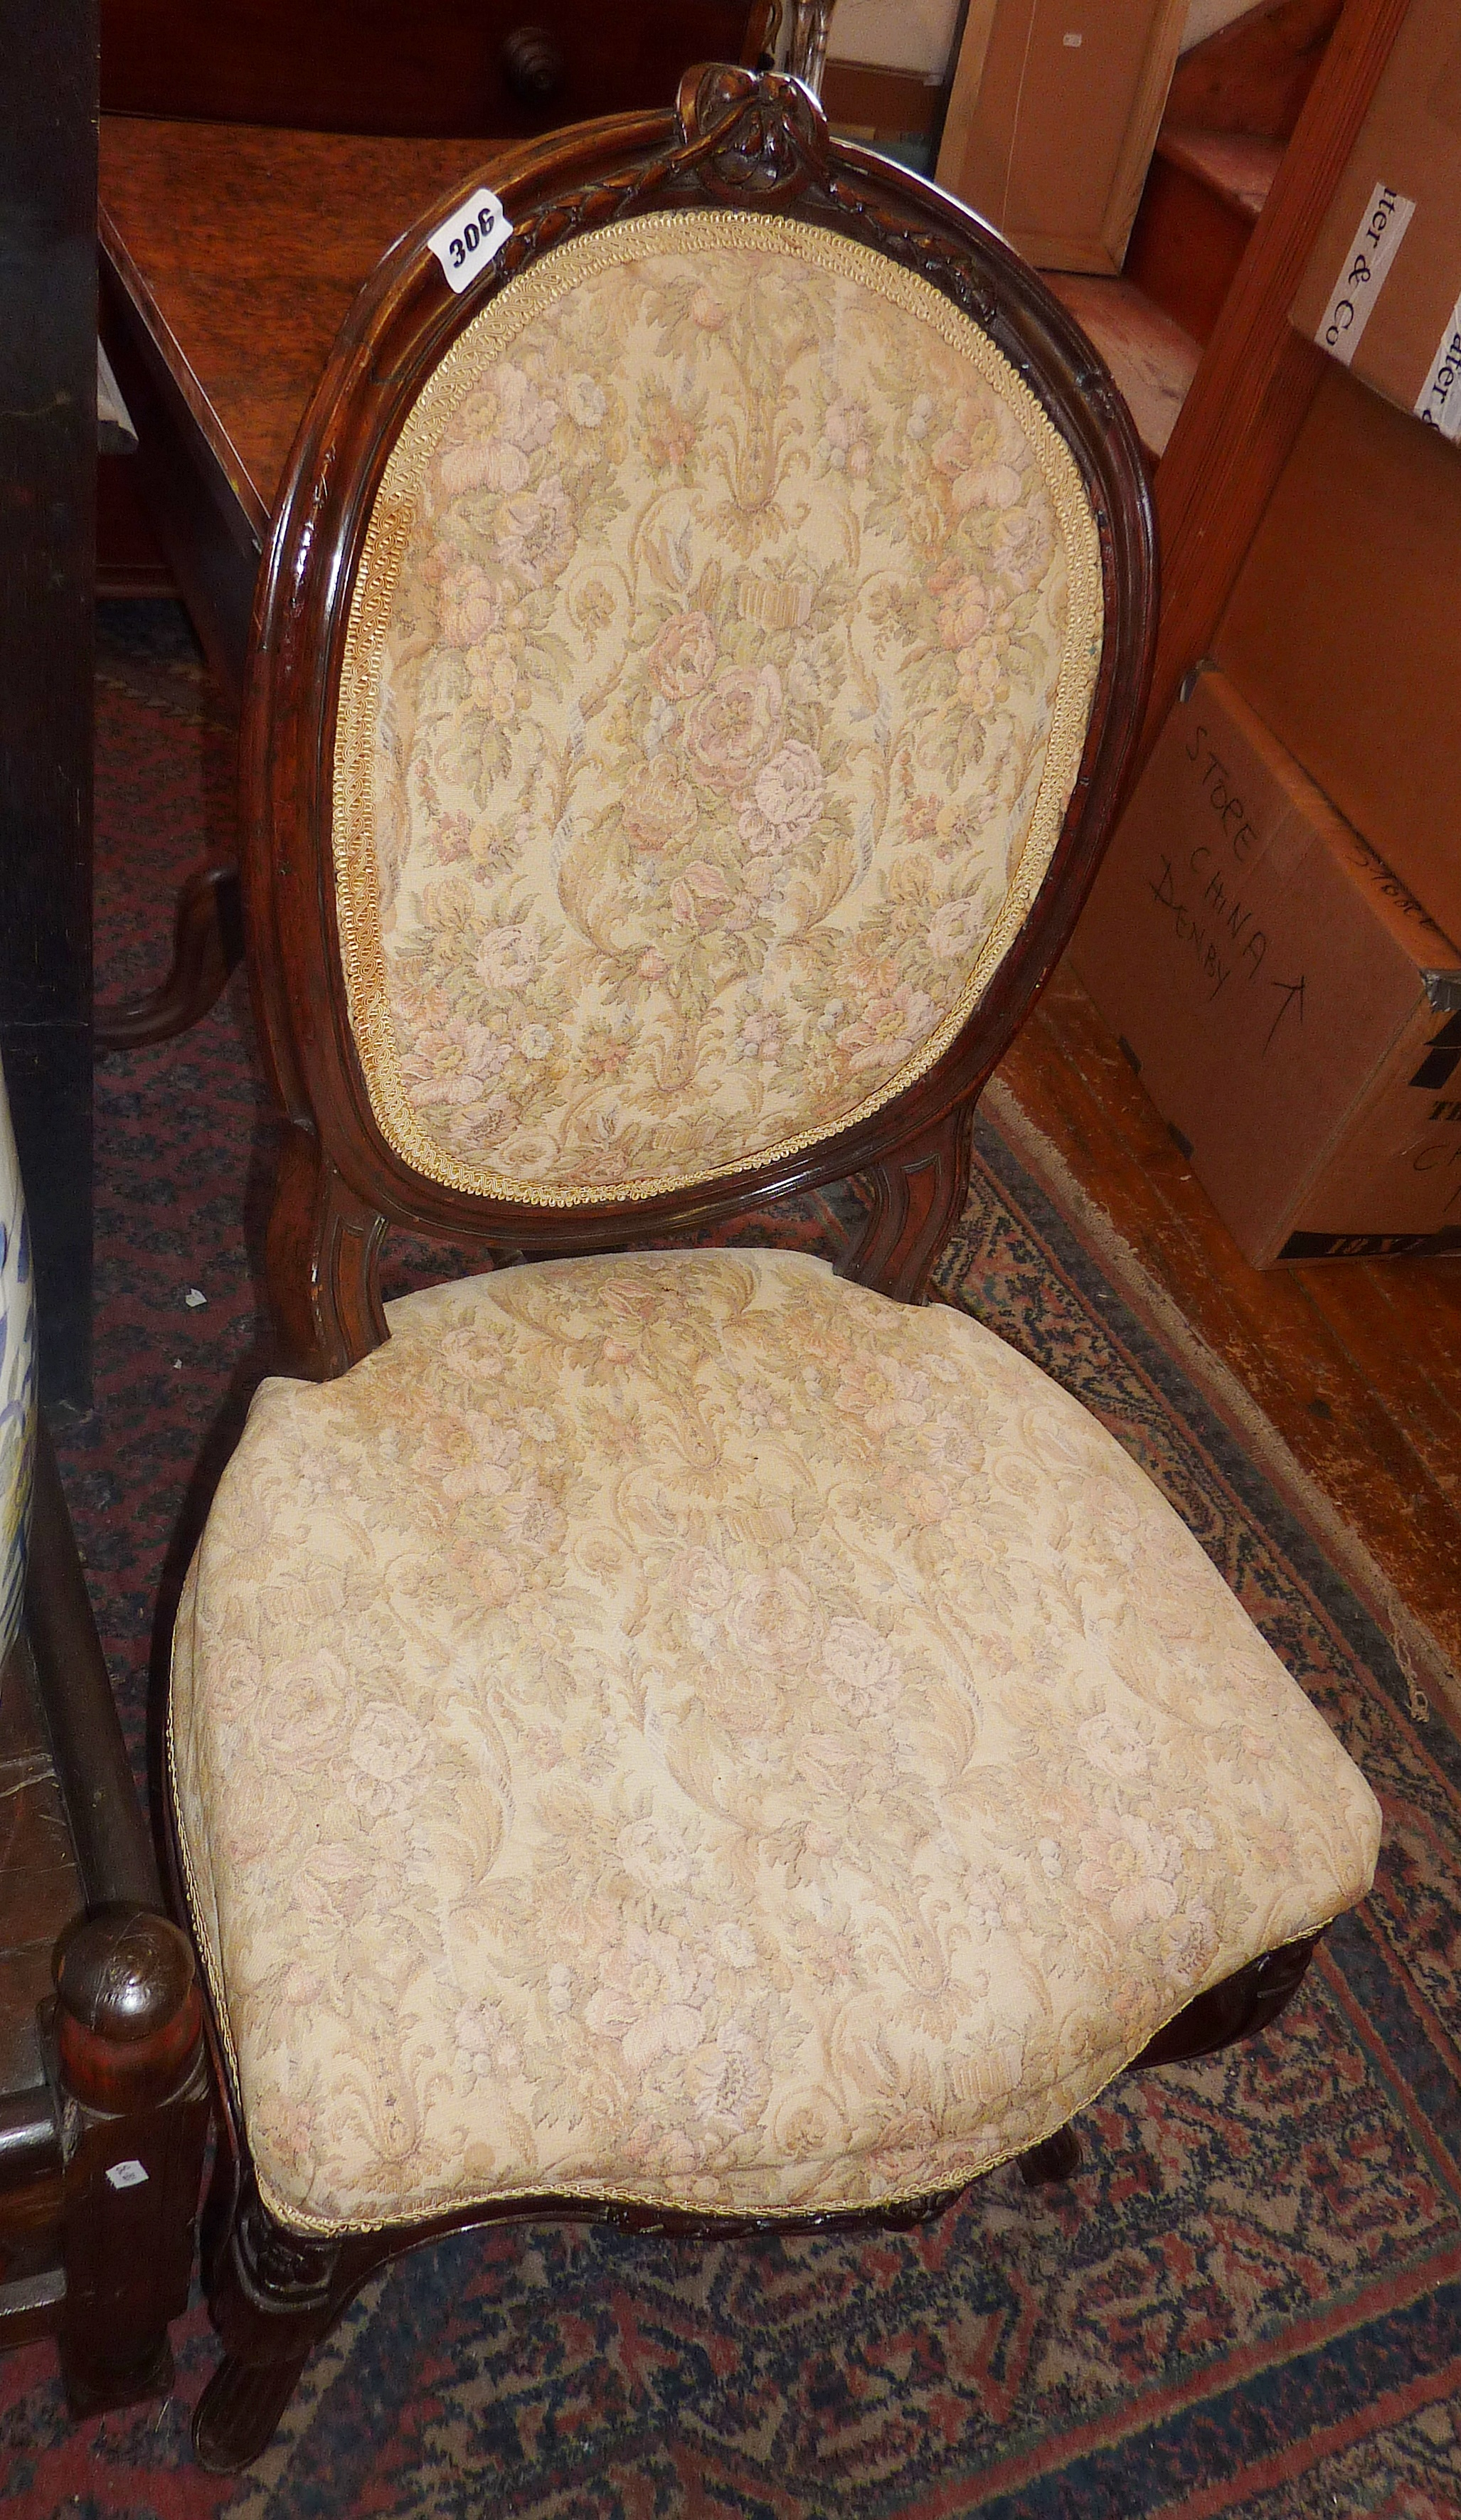 Lot 306 - Pair 19th century French salon chairs with upholstered balloon-backs and seats on carved cabriole